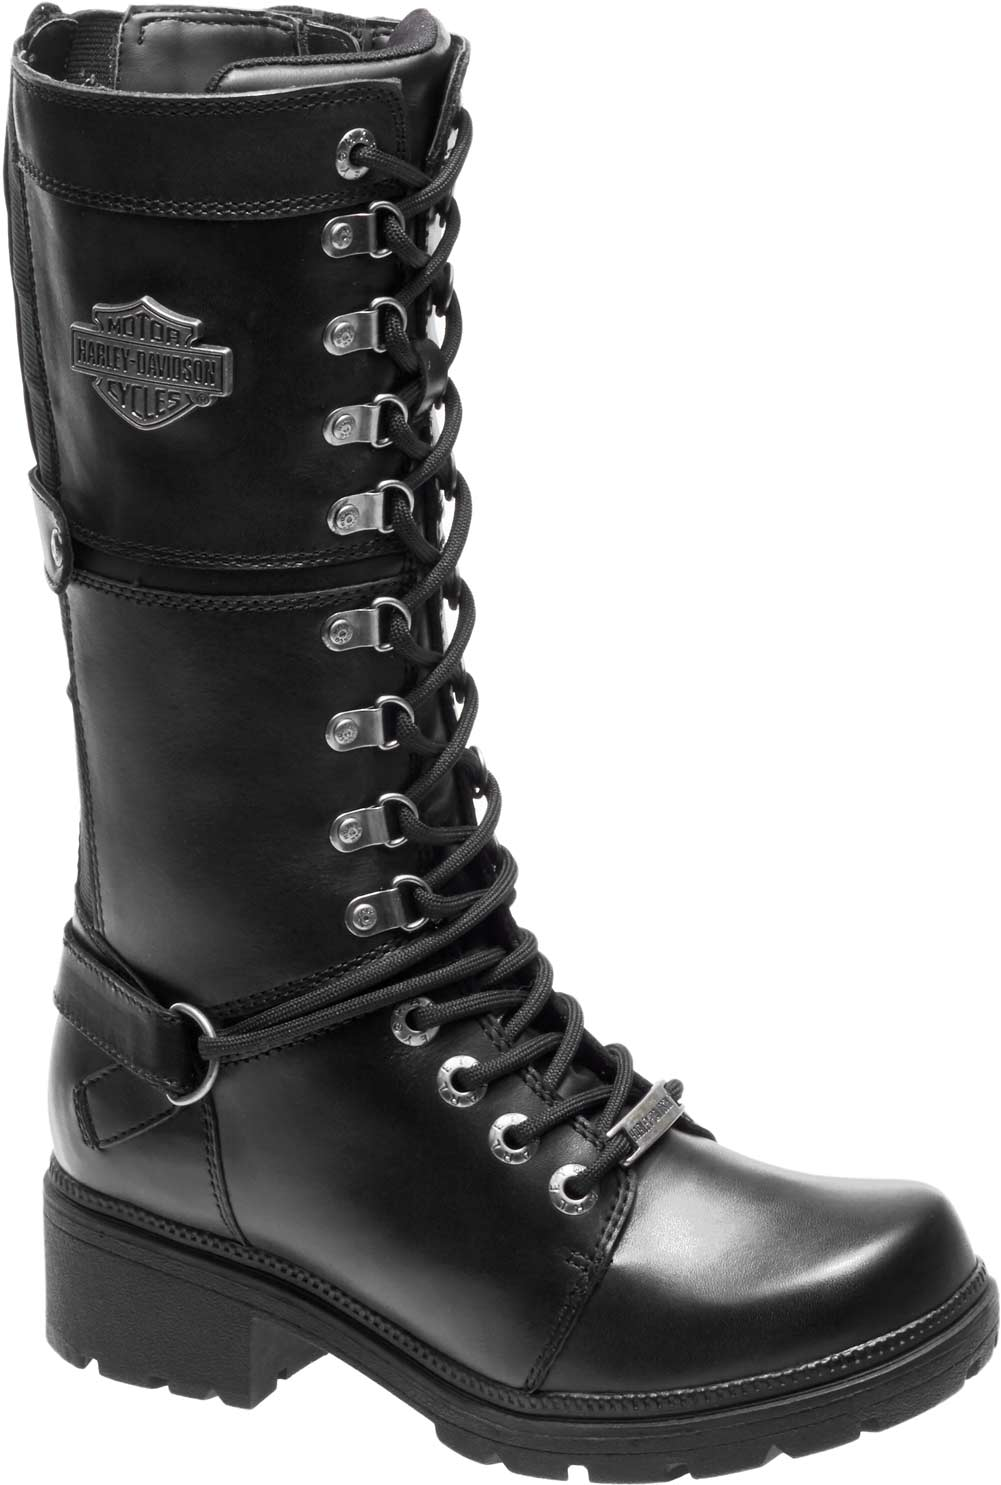 a2063f6602a3 Harley-Davidson Women s Harland 11-Inch Black Mid-Calf Motorcycle Boots  D83987